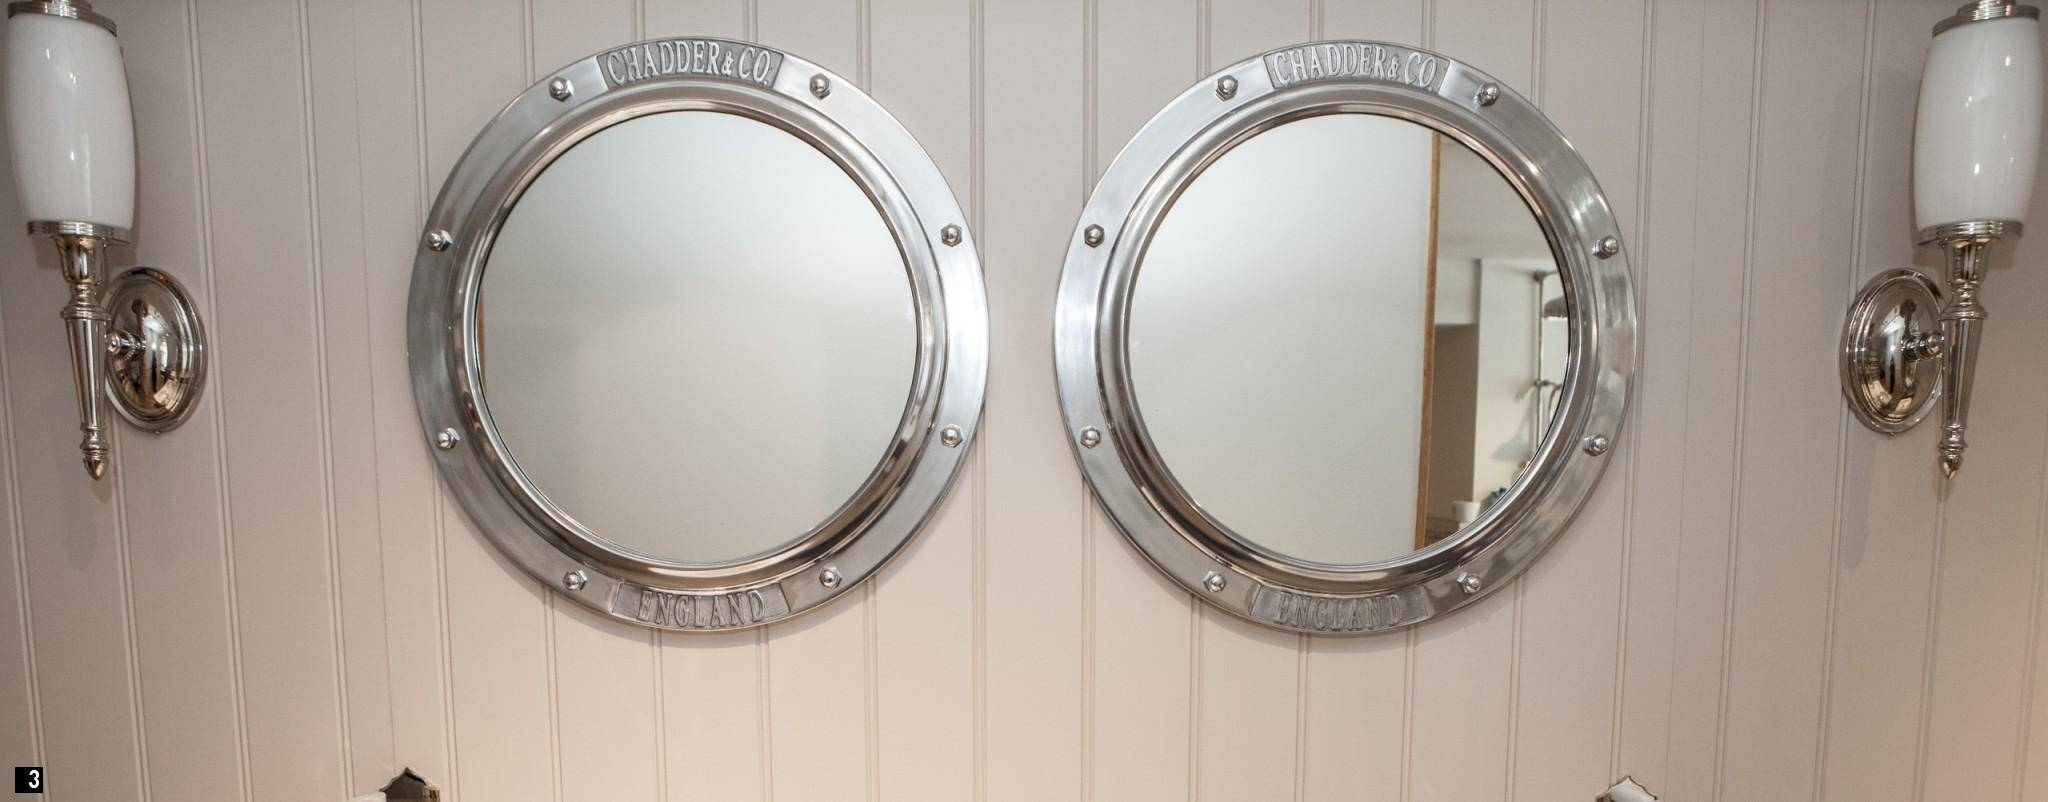 Porthole Mirrors | Product Categories | Chadder & Co. with Porthole Mirrors (Image 8 of 15)